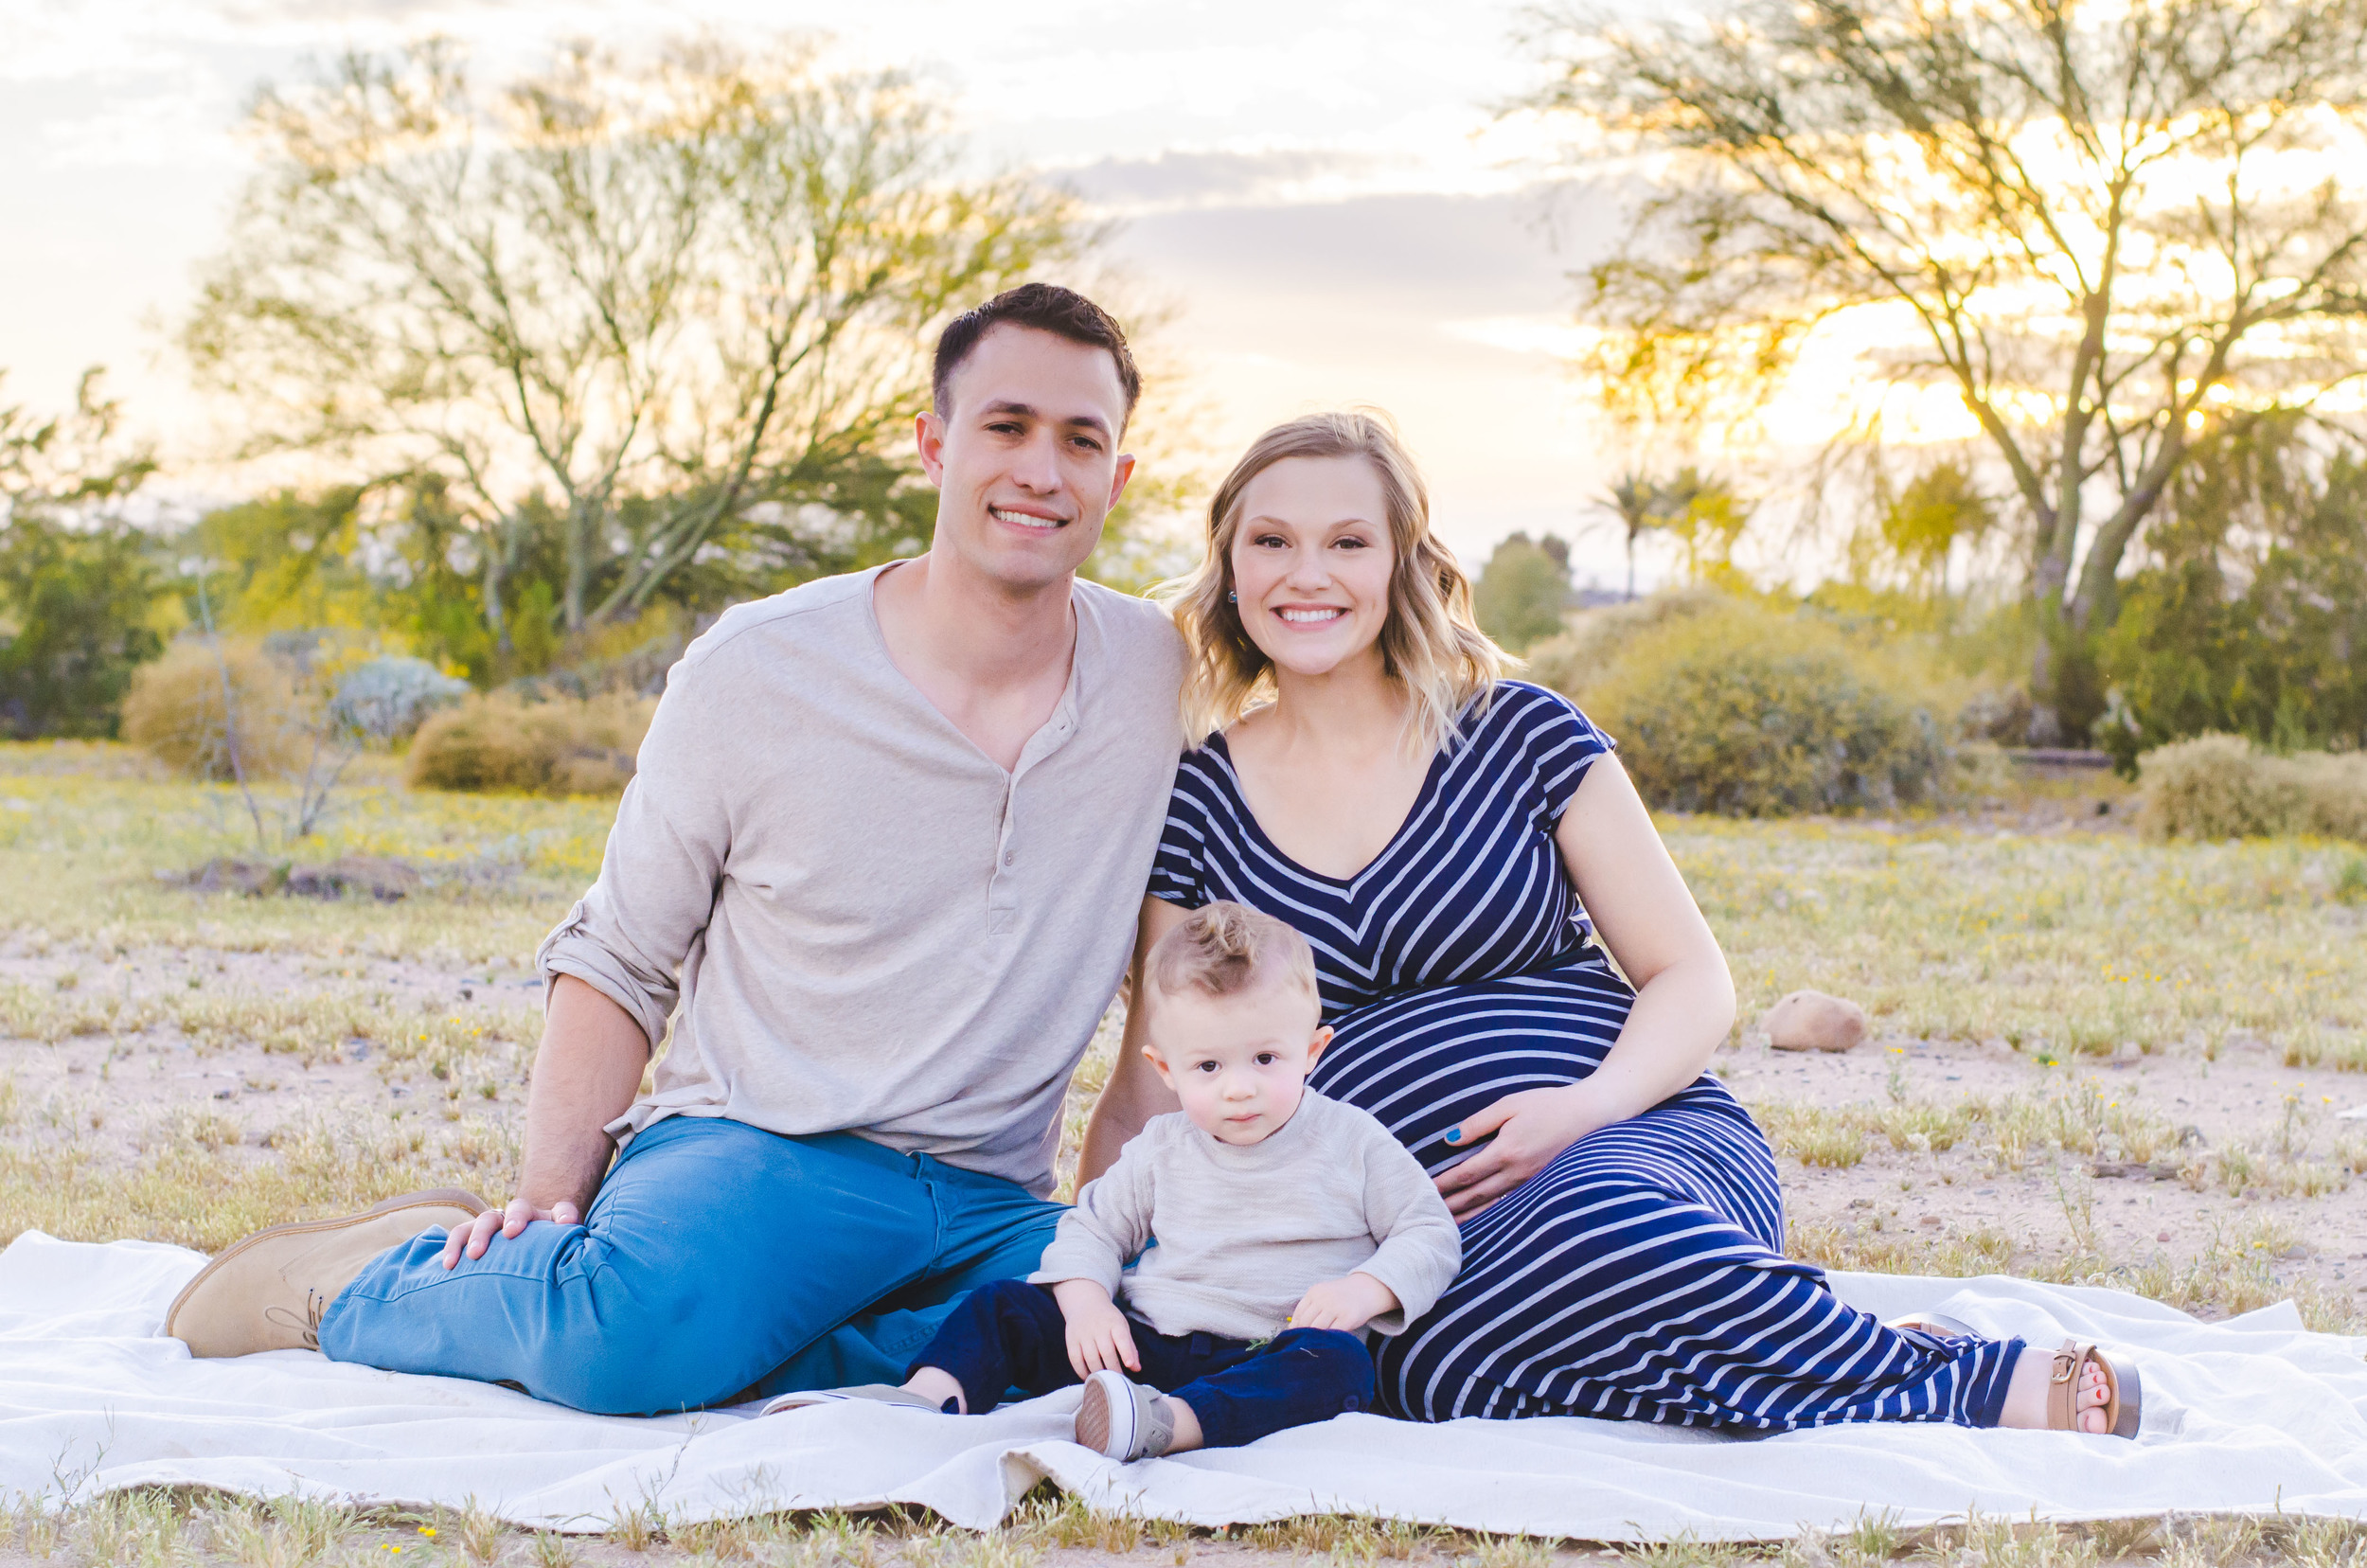 glendale arizona family photographer -00542015.jpg